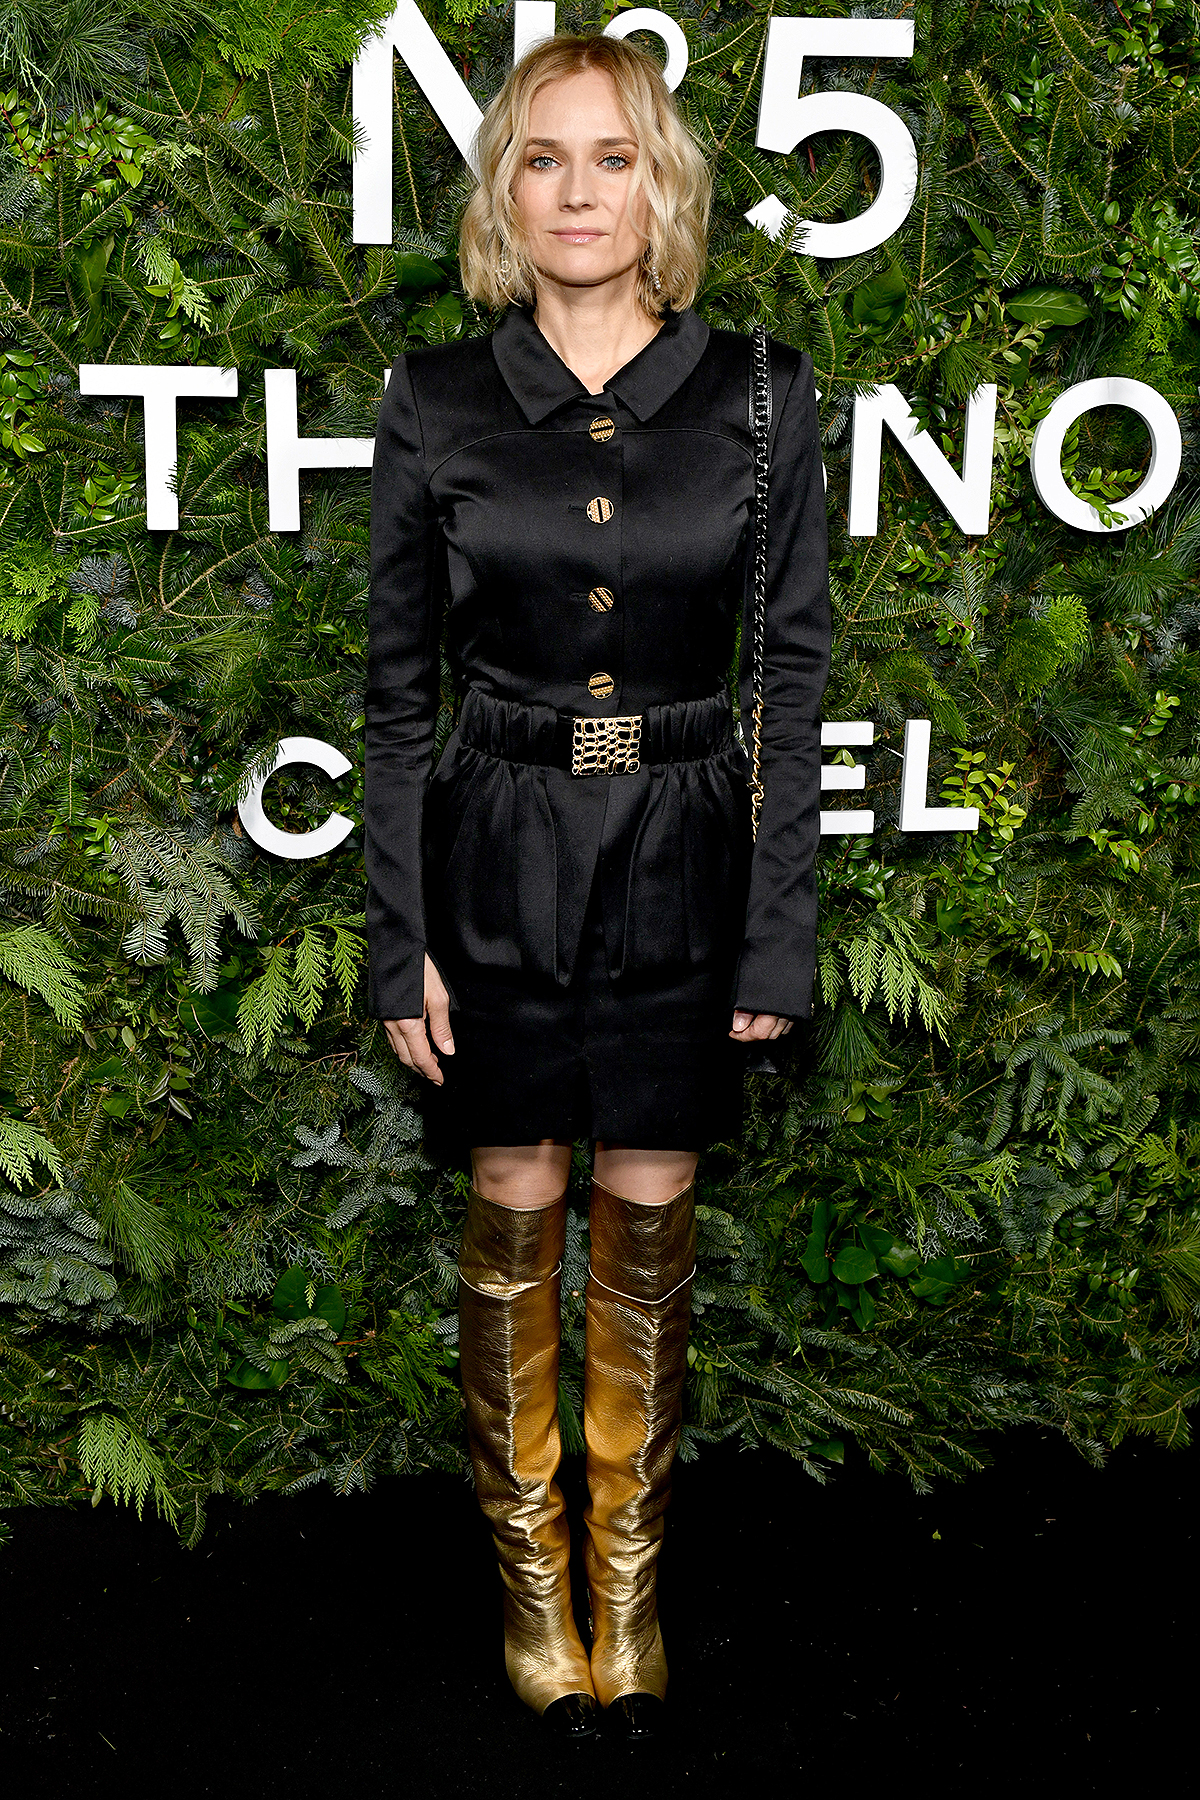 NEW YORK, NEW YORK - DECEMBER 10: Diane Kruger, wearing CHANEL, attends the CHANEL party to celebrate the debut of CHANEL N5 In The Snow at The Standard High Line on December 10, 2019 in New York City.